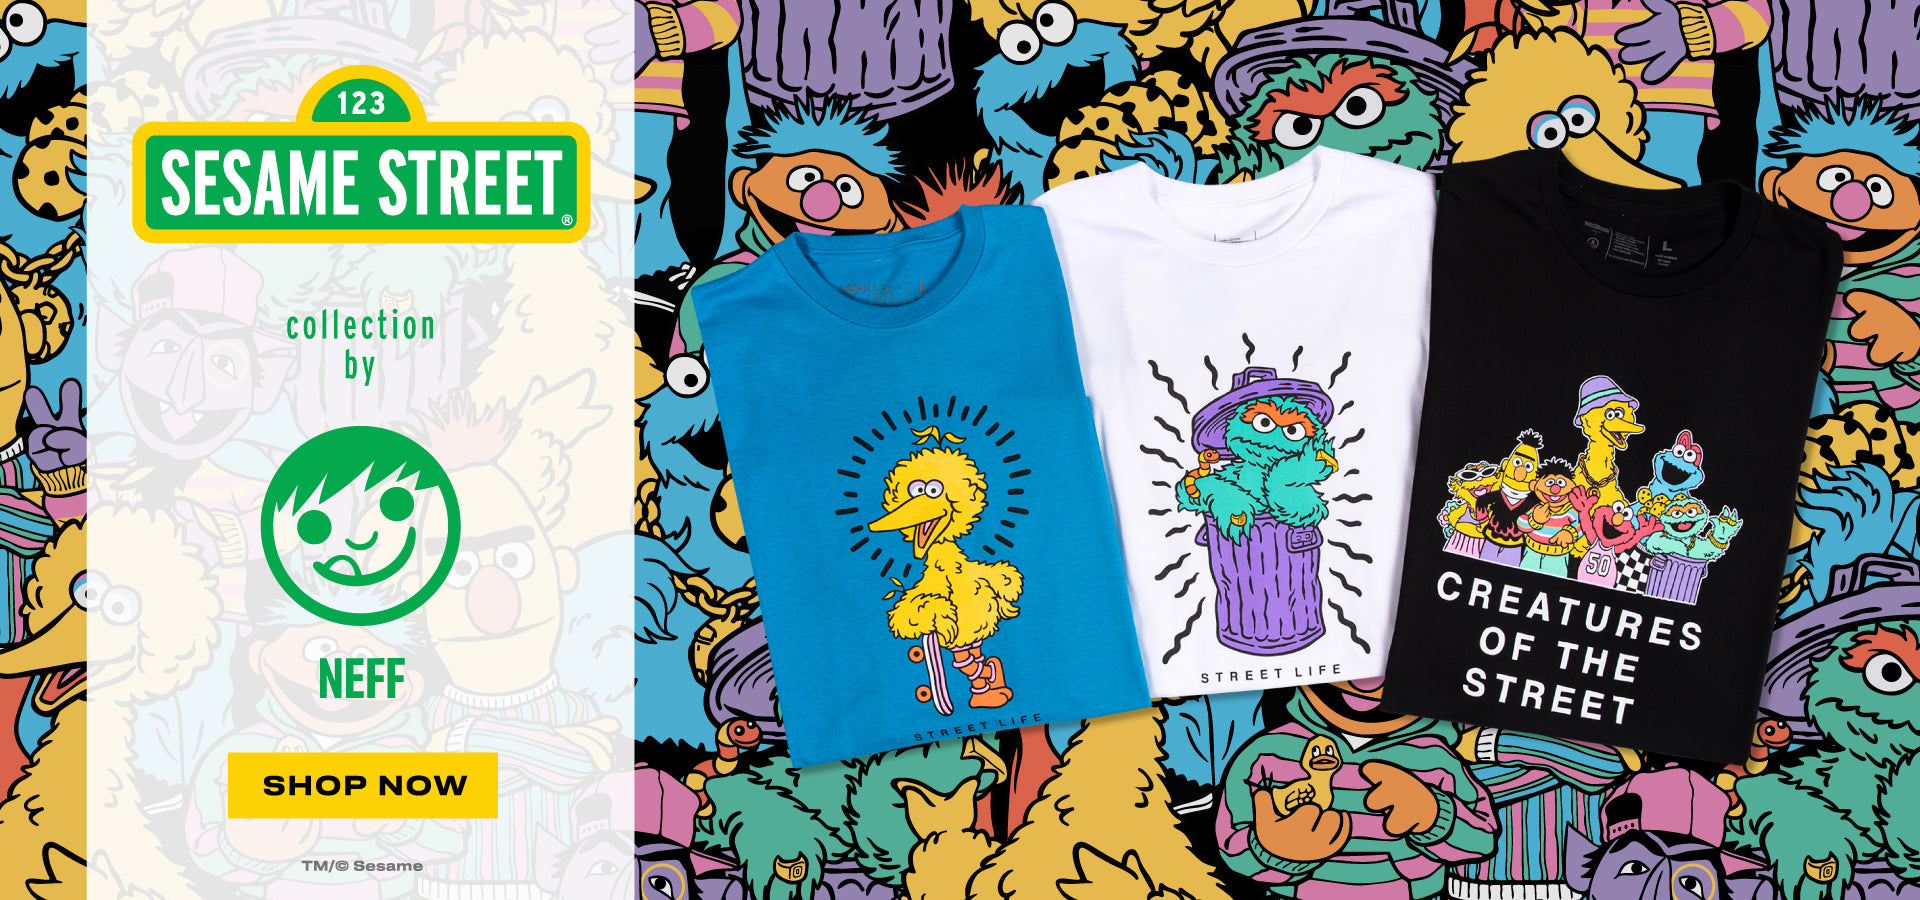 SESAME STREET COLLABORATION